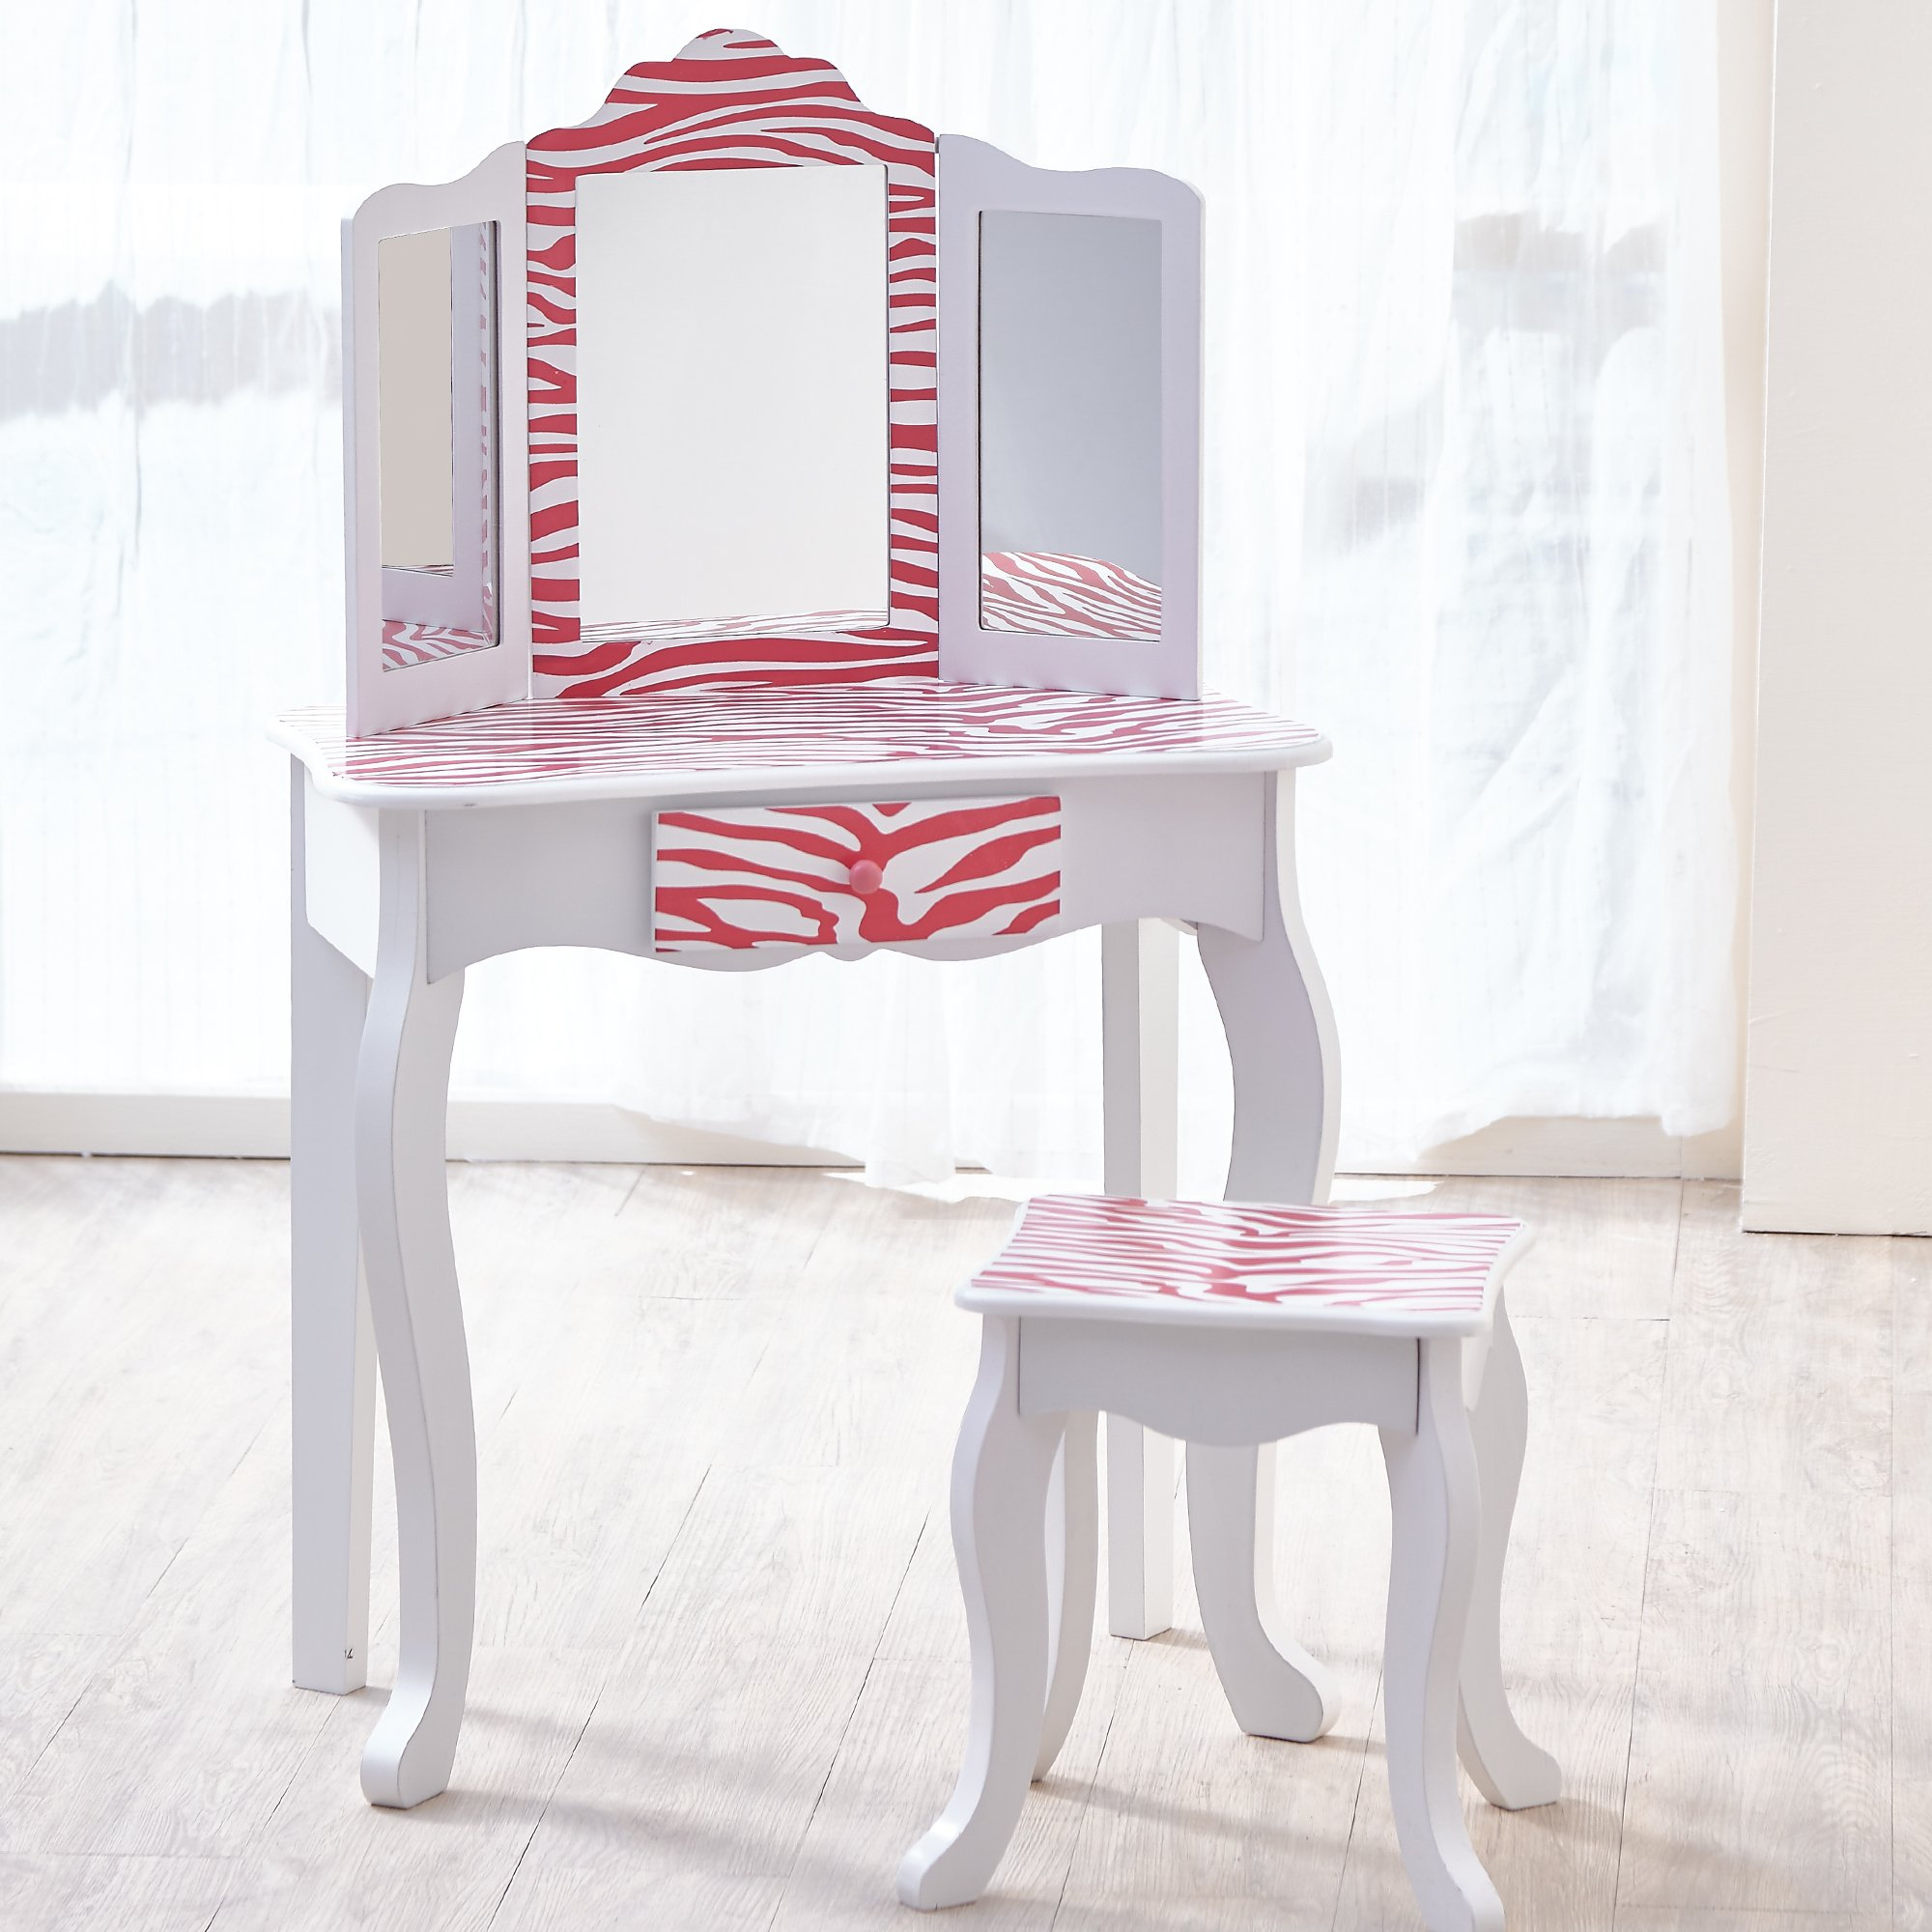 Teamson Kids - Fashion Prints Girls Vanity Table and Stool Set with Mirror - Zebra (Pink / White) by Teamson Kids